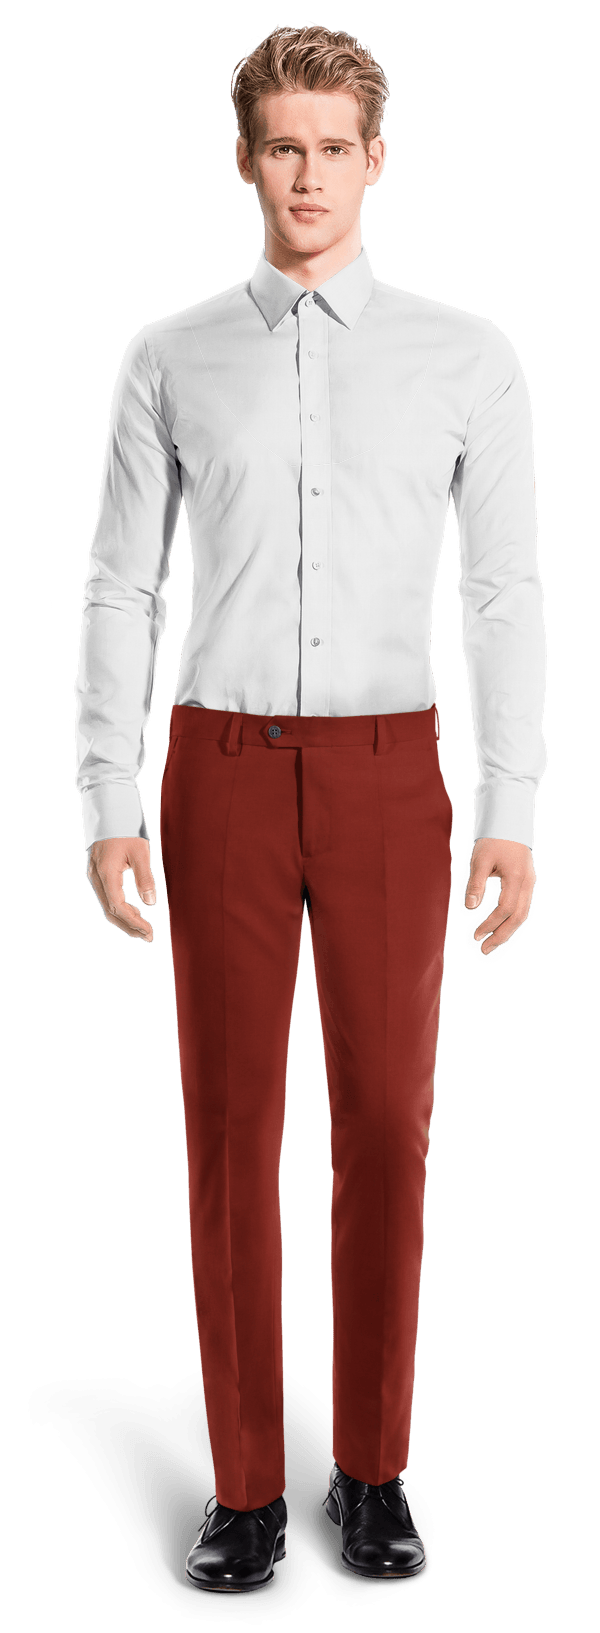 Pantaloni chino slim fit rossi